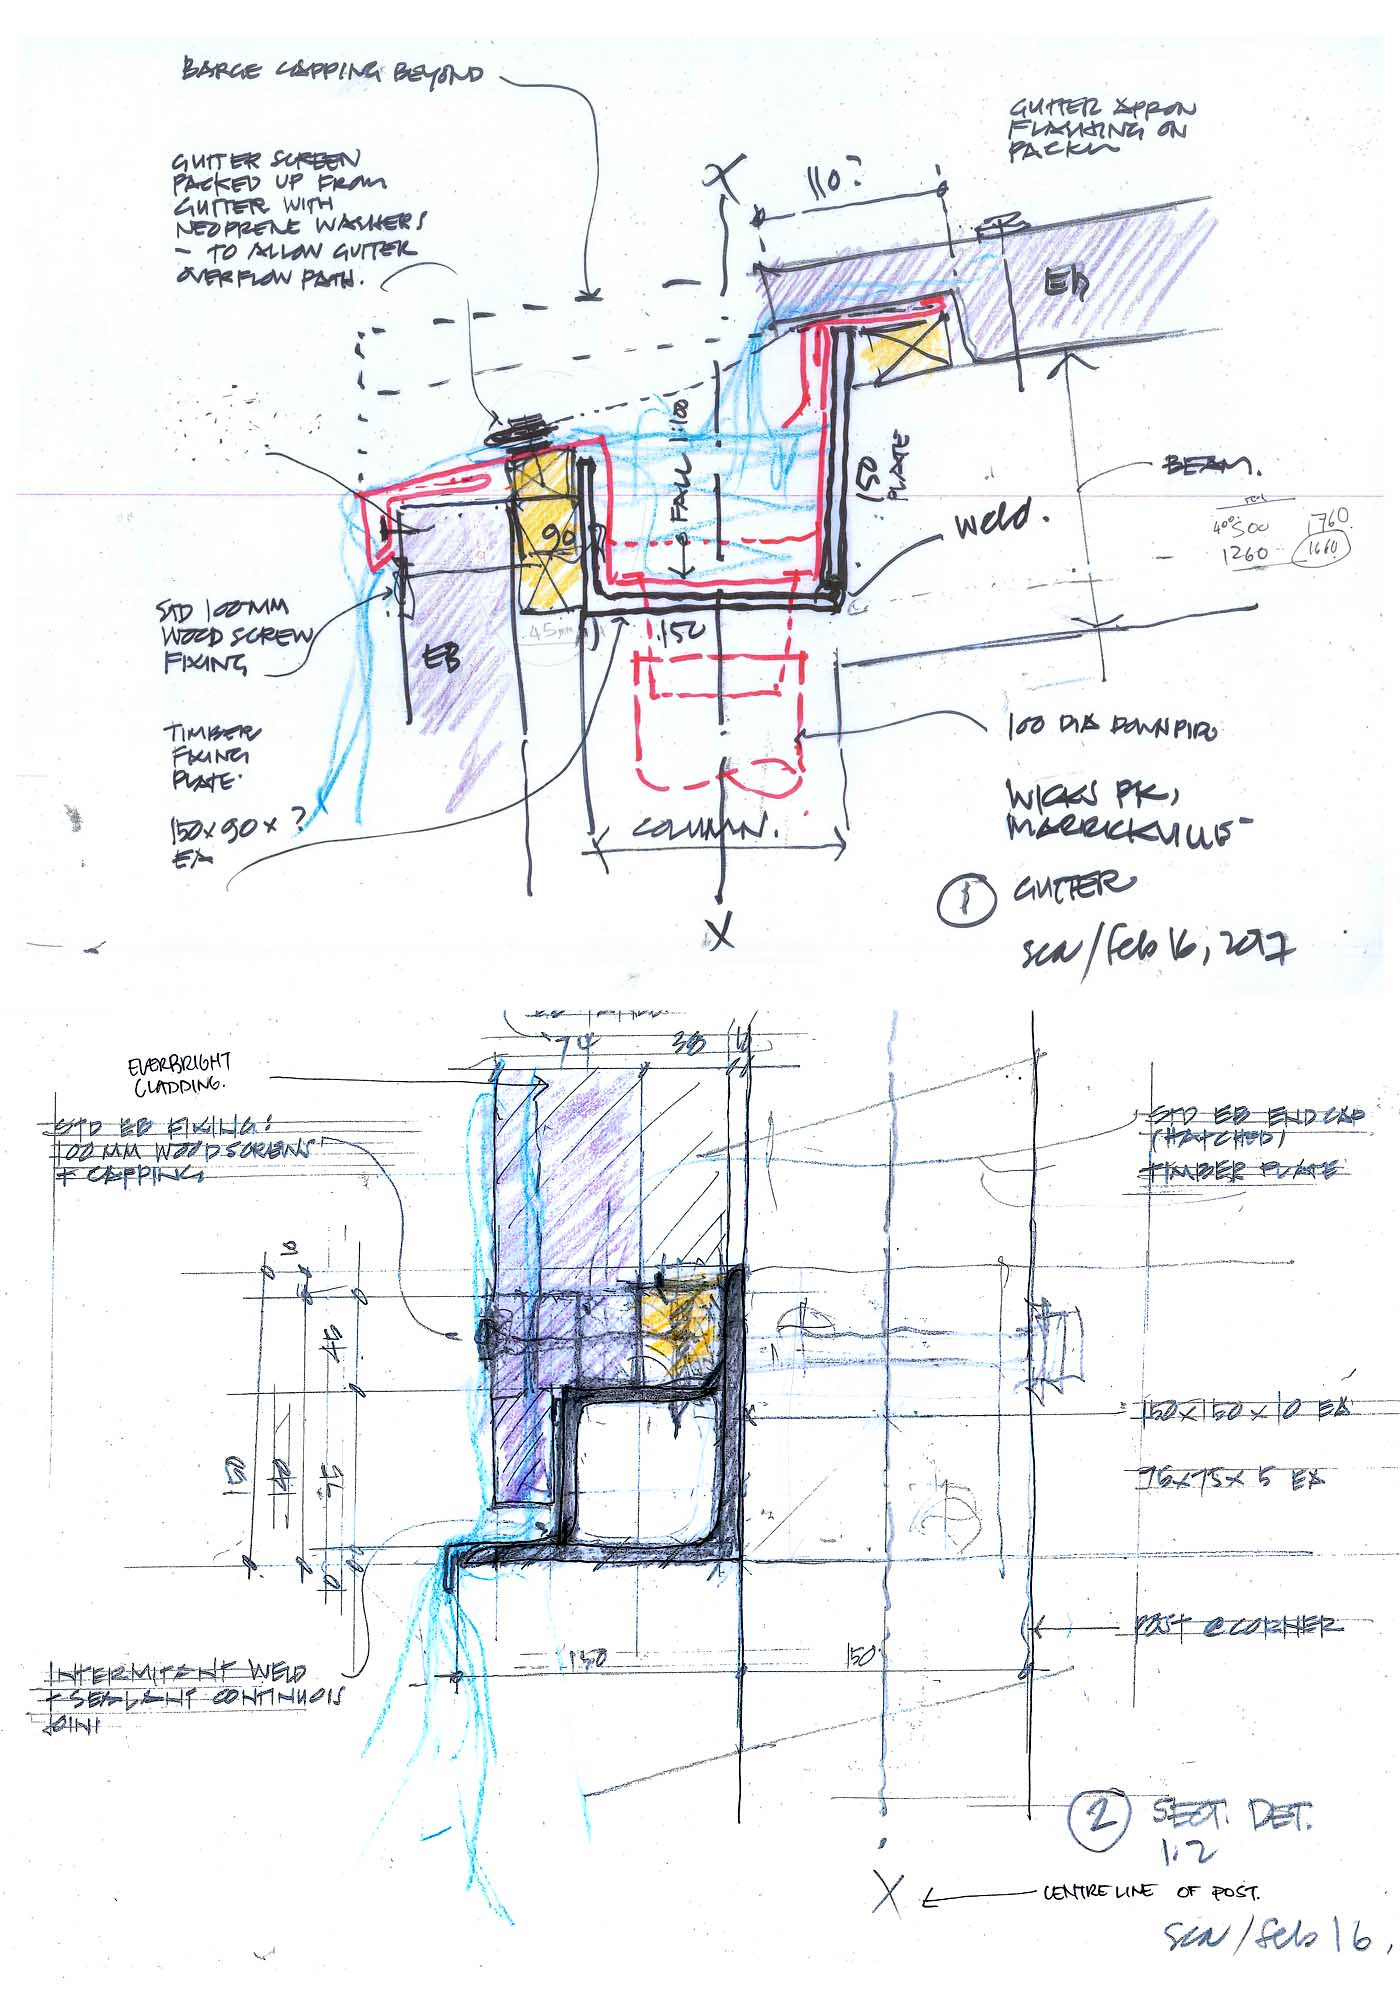 Wicks Park Amenities by award winning public architectural firm Sam Crawford Architects. Coloured hand sketch sectional details.